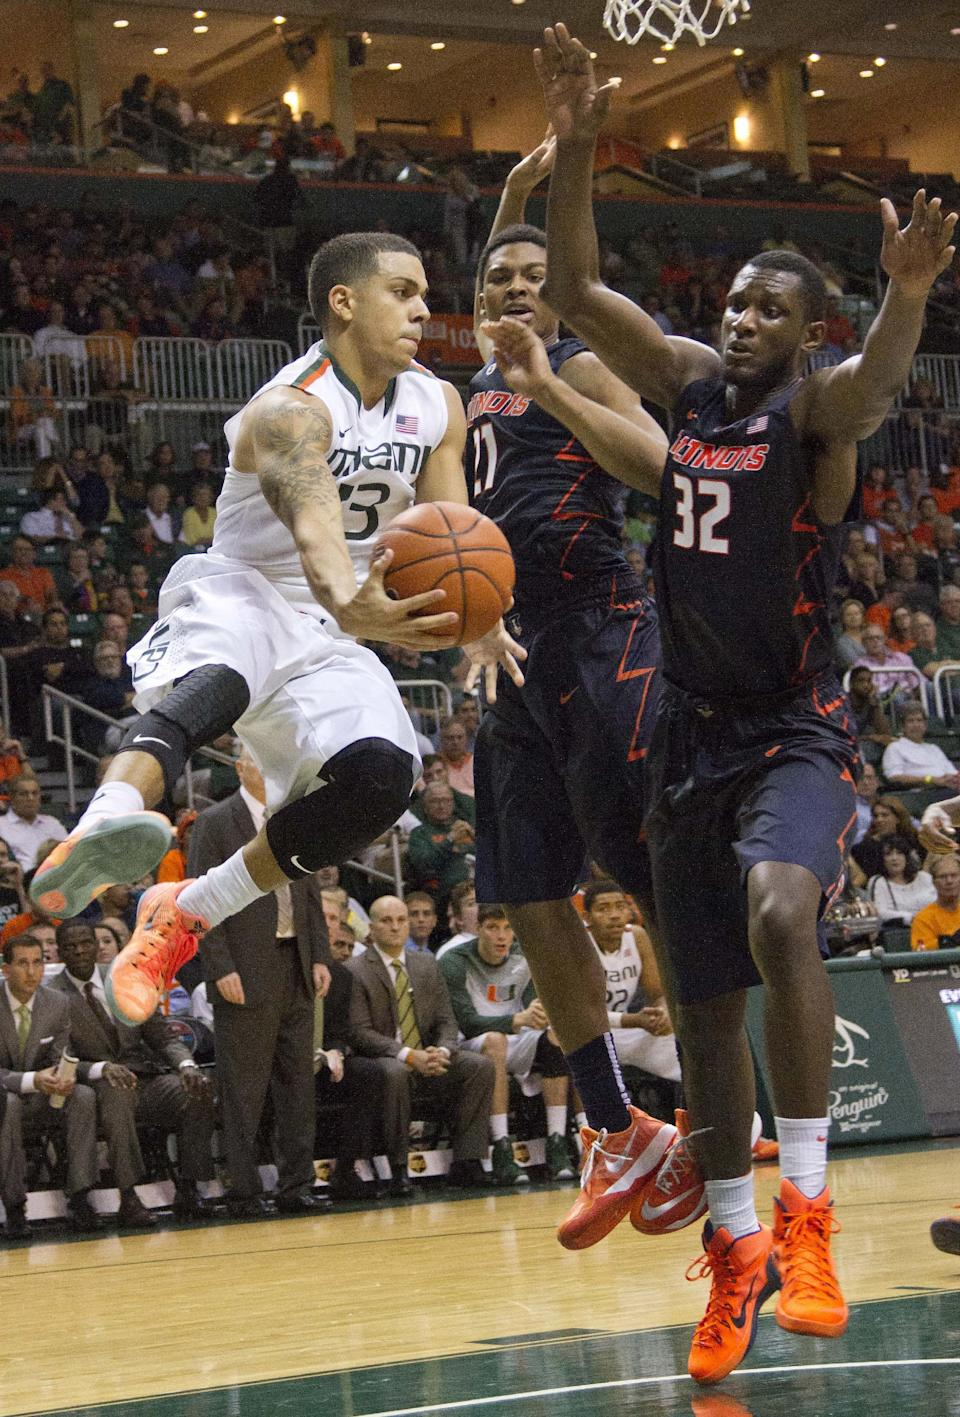 Miami guard Angel Rodriguez, left, passes the ball past Illinois guard Malcolm Hill, center, and forward/center Nnanna Egwu (32) during the second half of an NCAA college basketball game, Tuesday, Dec. 2, 2014 in Coral Gables, Fla. Miami defeated Illinois 70-61. (AP Photo/Wilfredo Lee)